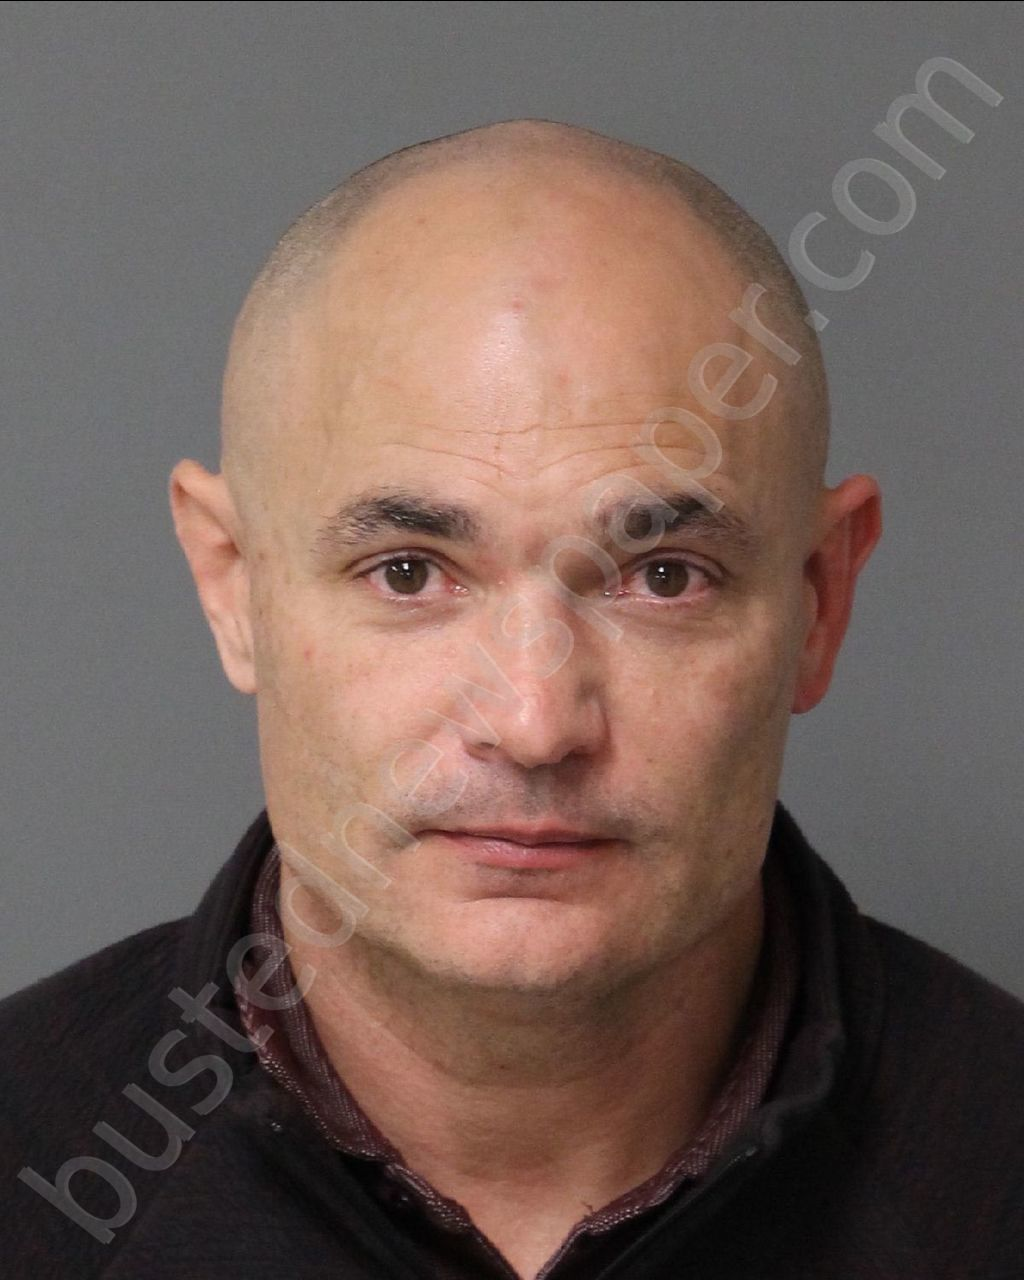 POPE,JOHN SHANNON Mugshot, Wake County, North Carolina - 2019-02-24